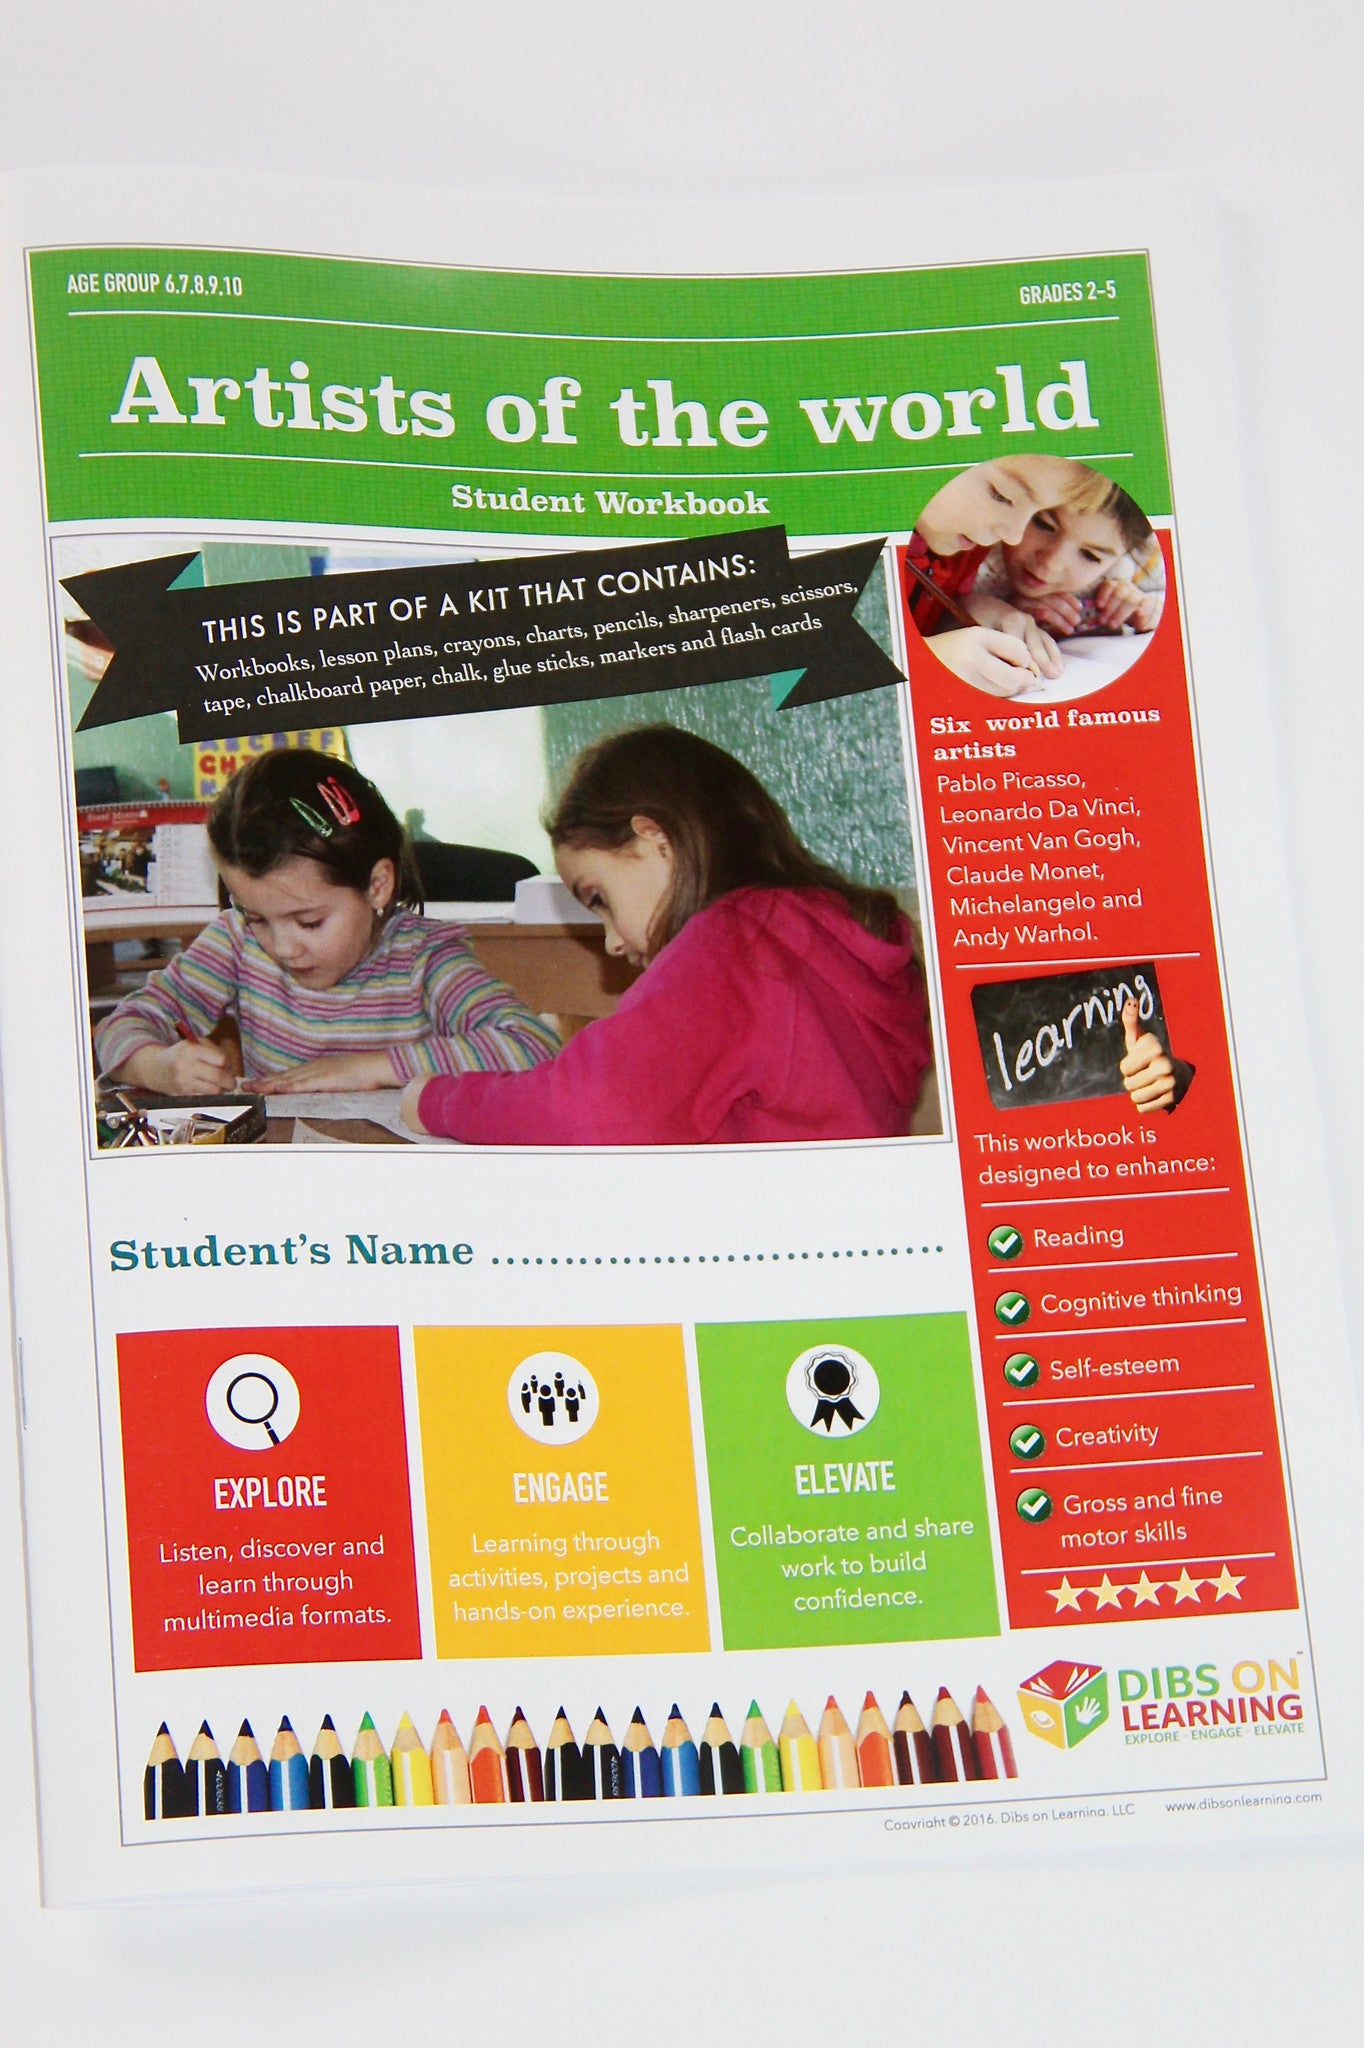 Digital student workbook download - Artists of the world (with free lesson  plans)